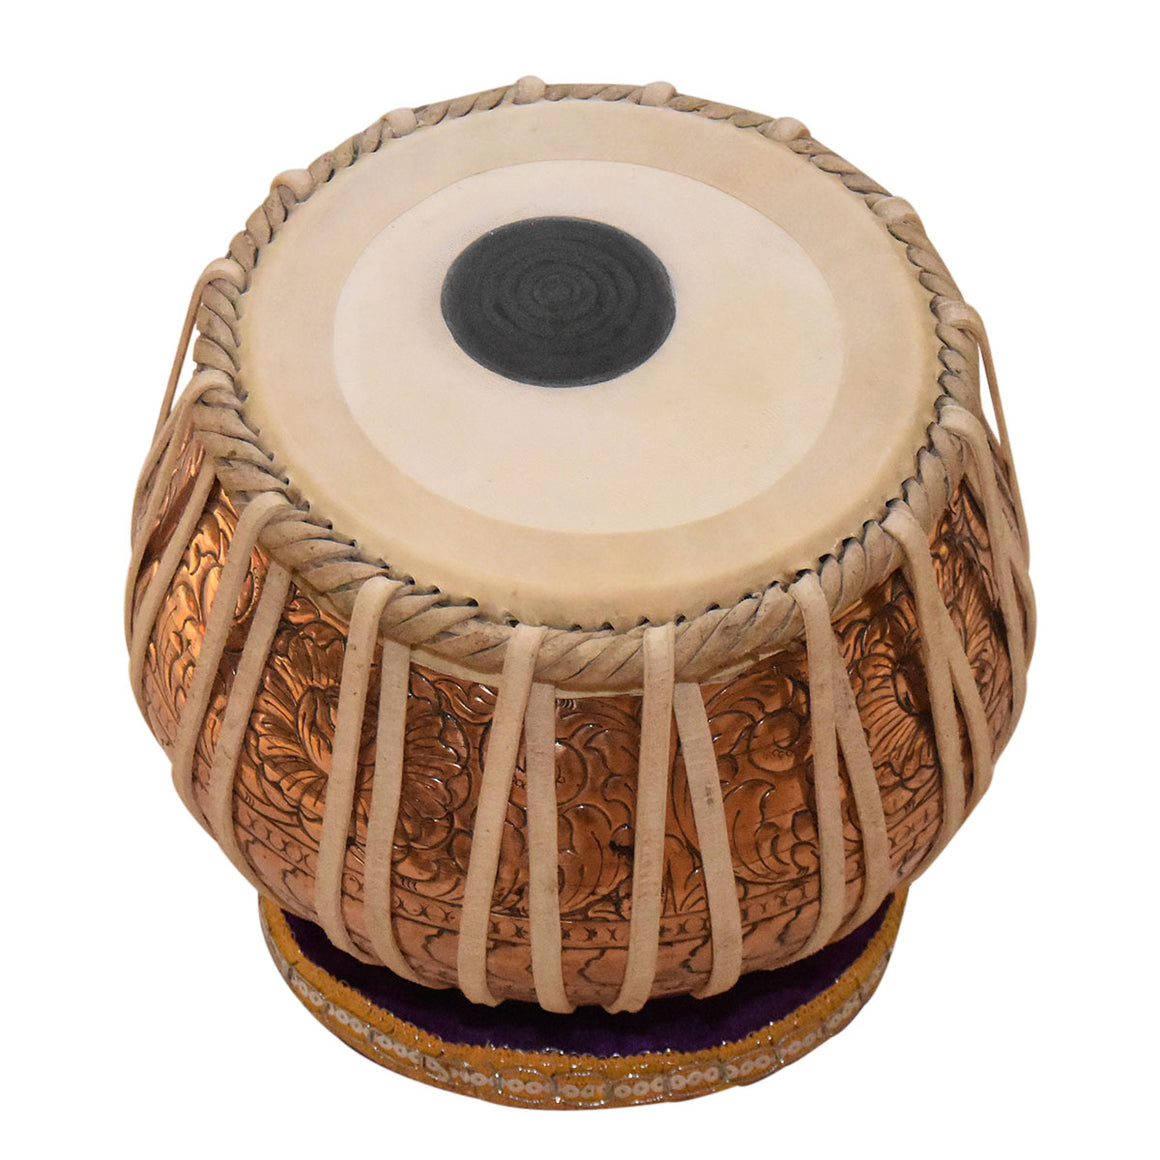 TAAL Concert Copper Bayan / Dugga - 5KG weight